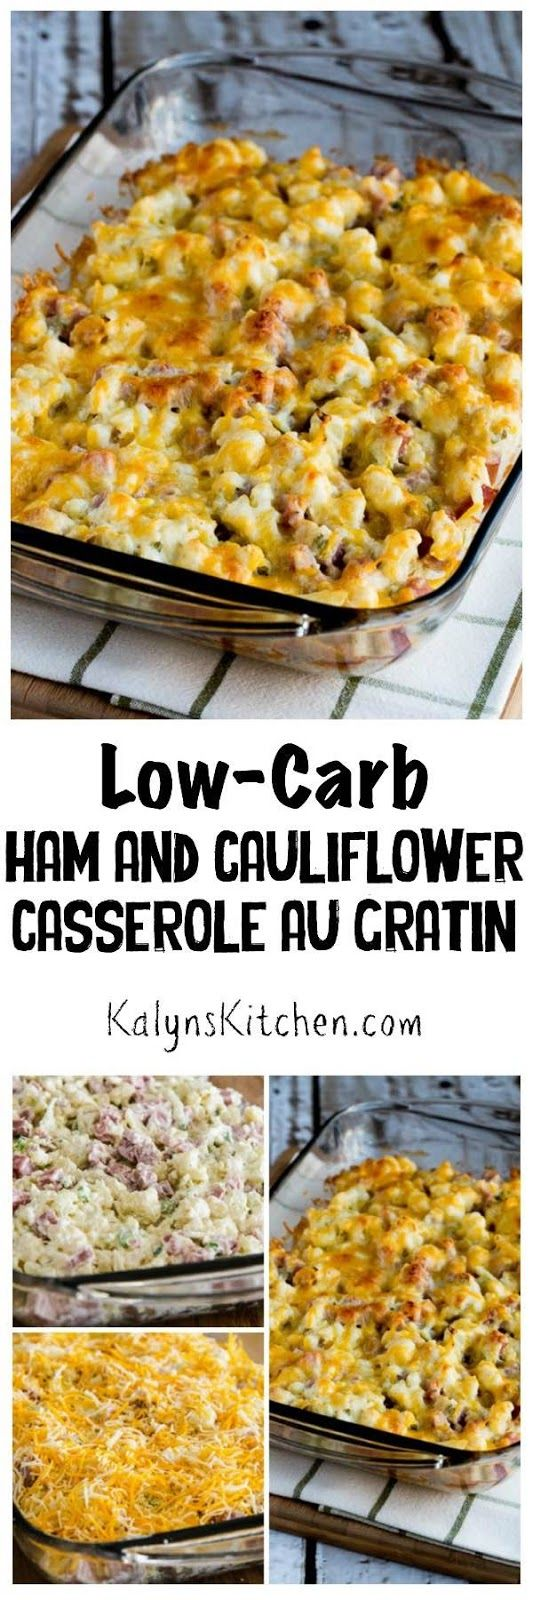 Low-Carb Ham and Cauliflower Casserole au Gratin is the perfect definition of Low-Carb Comfort Food! This delicious casserole is also gluten-free and South Beach Diet friendly. [found on KalynsKitchen.com]: